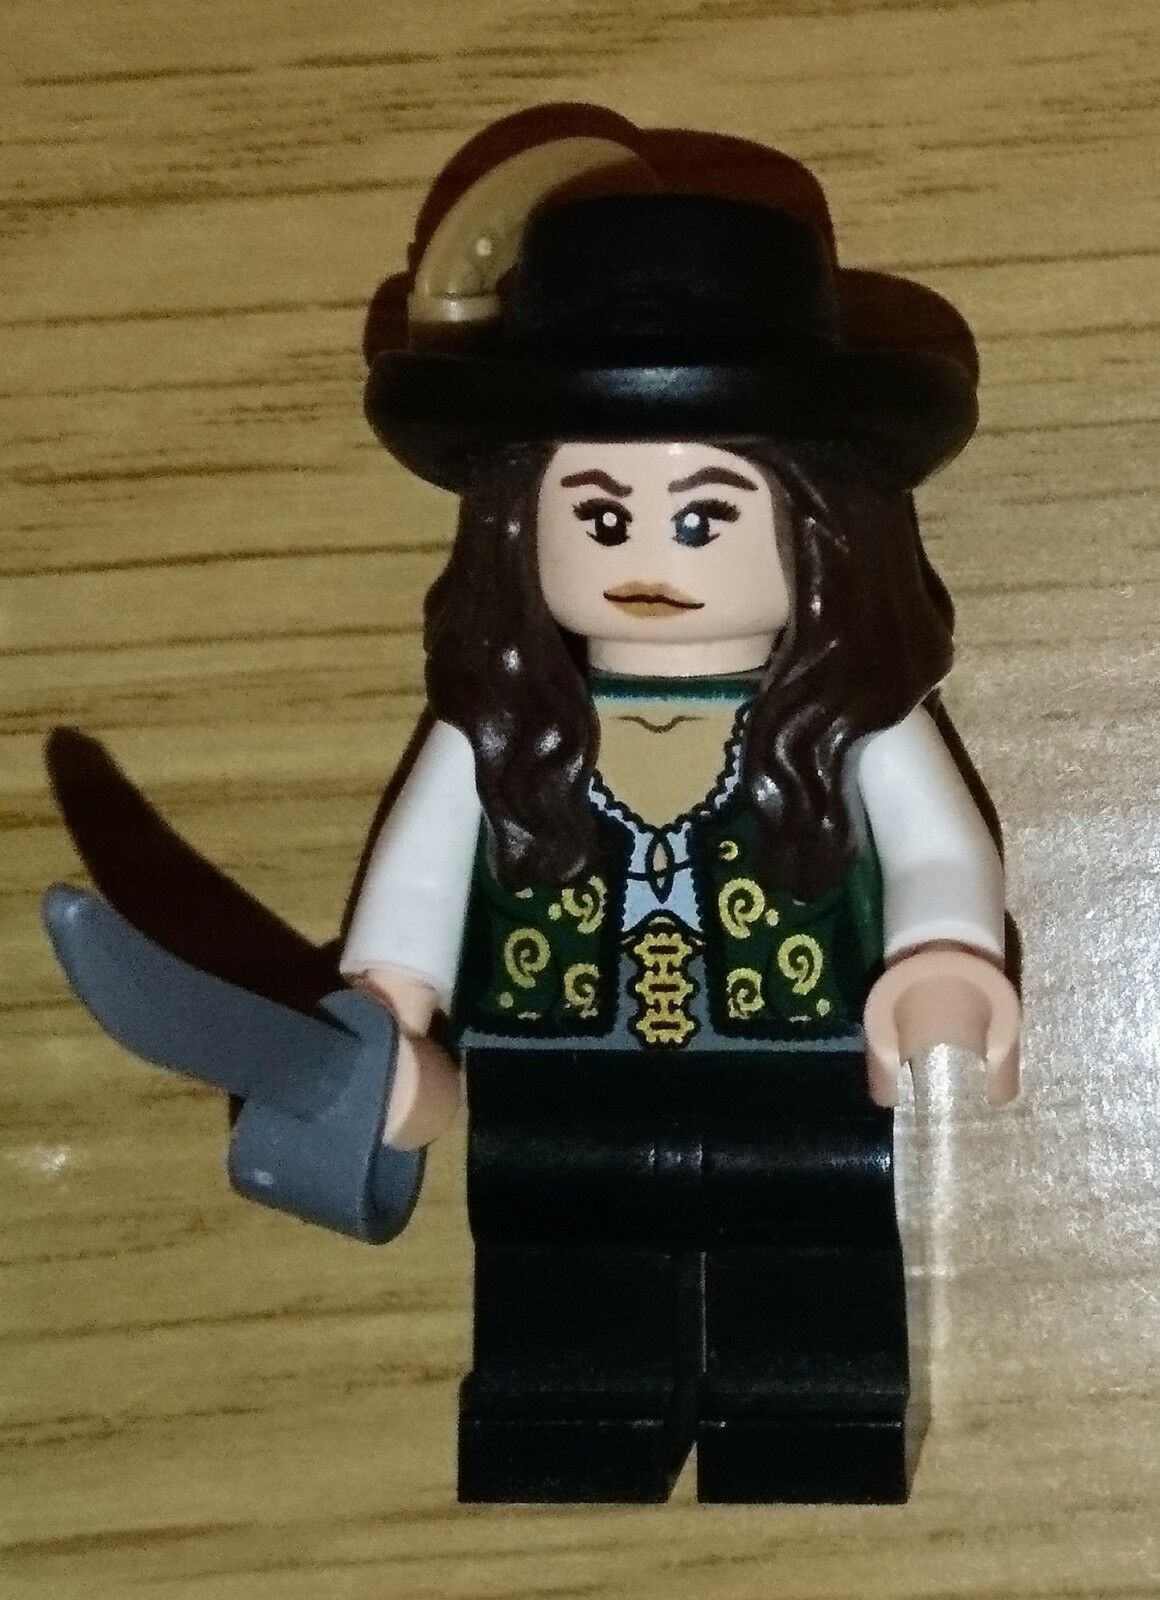 Lego Pirates of Caribbean Minifigure Angelica poc006 4195 Queen Anne's Revenge